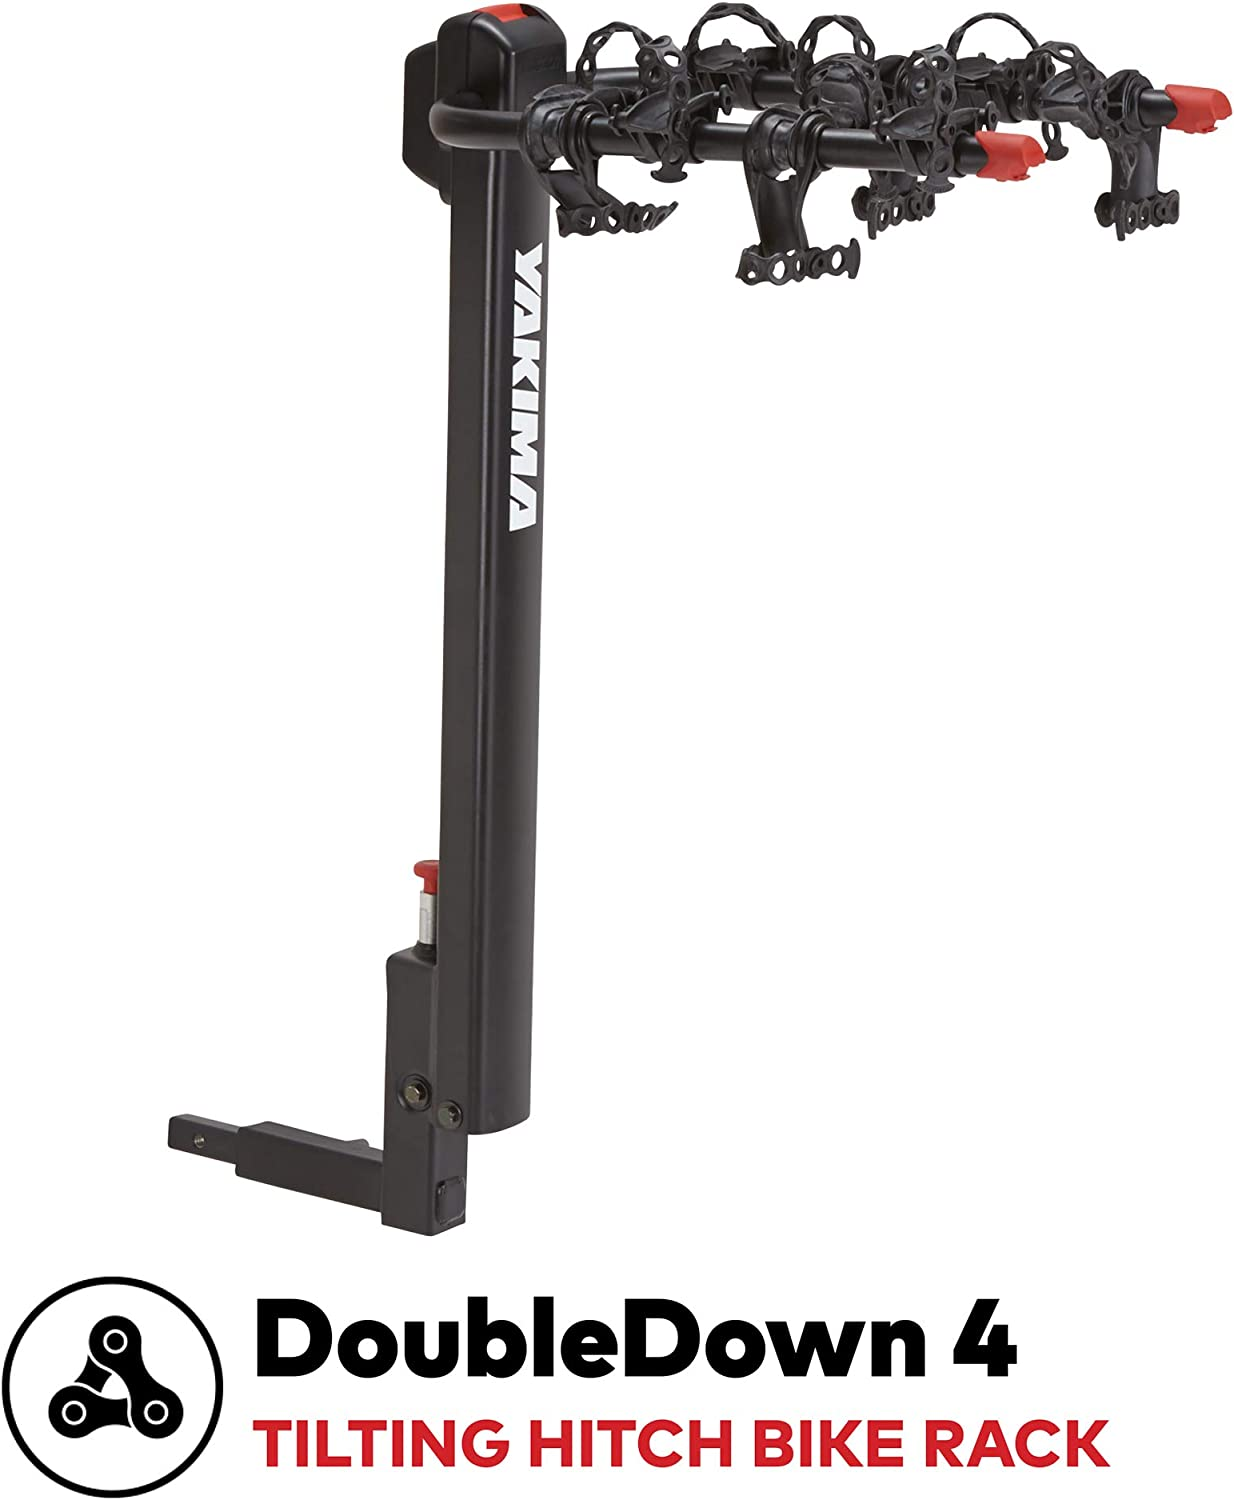 7. Yakima DoubleDown 4 Bike Rack